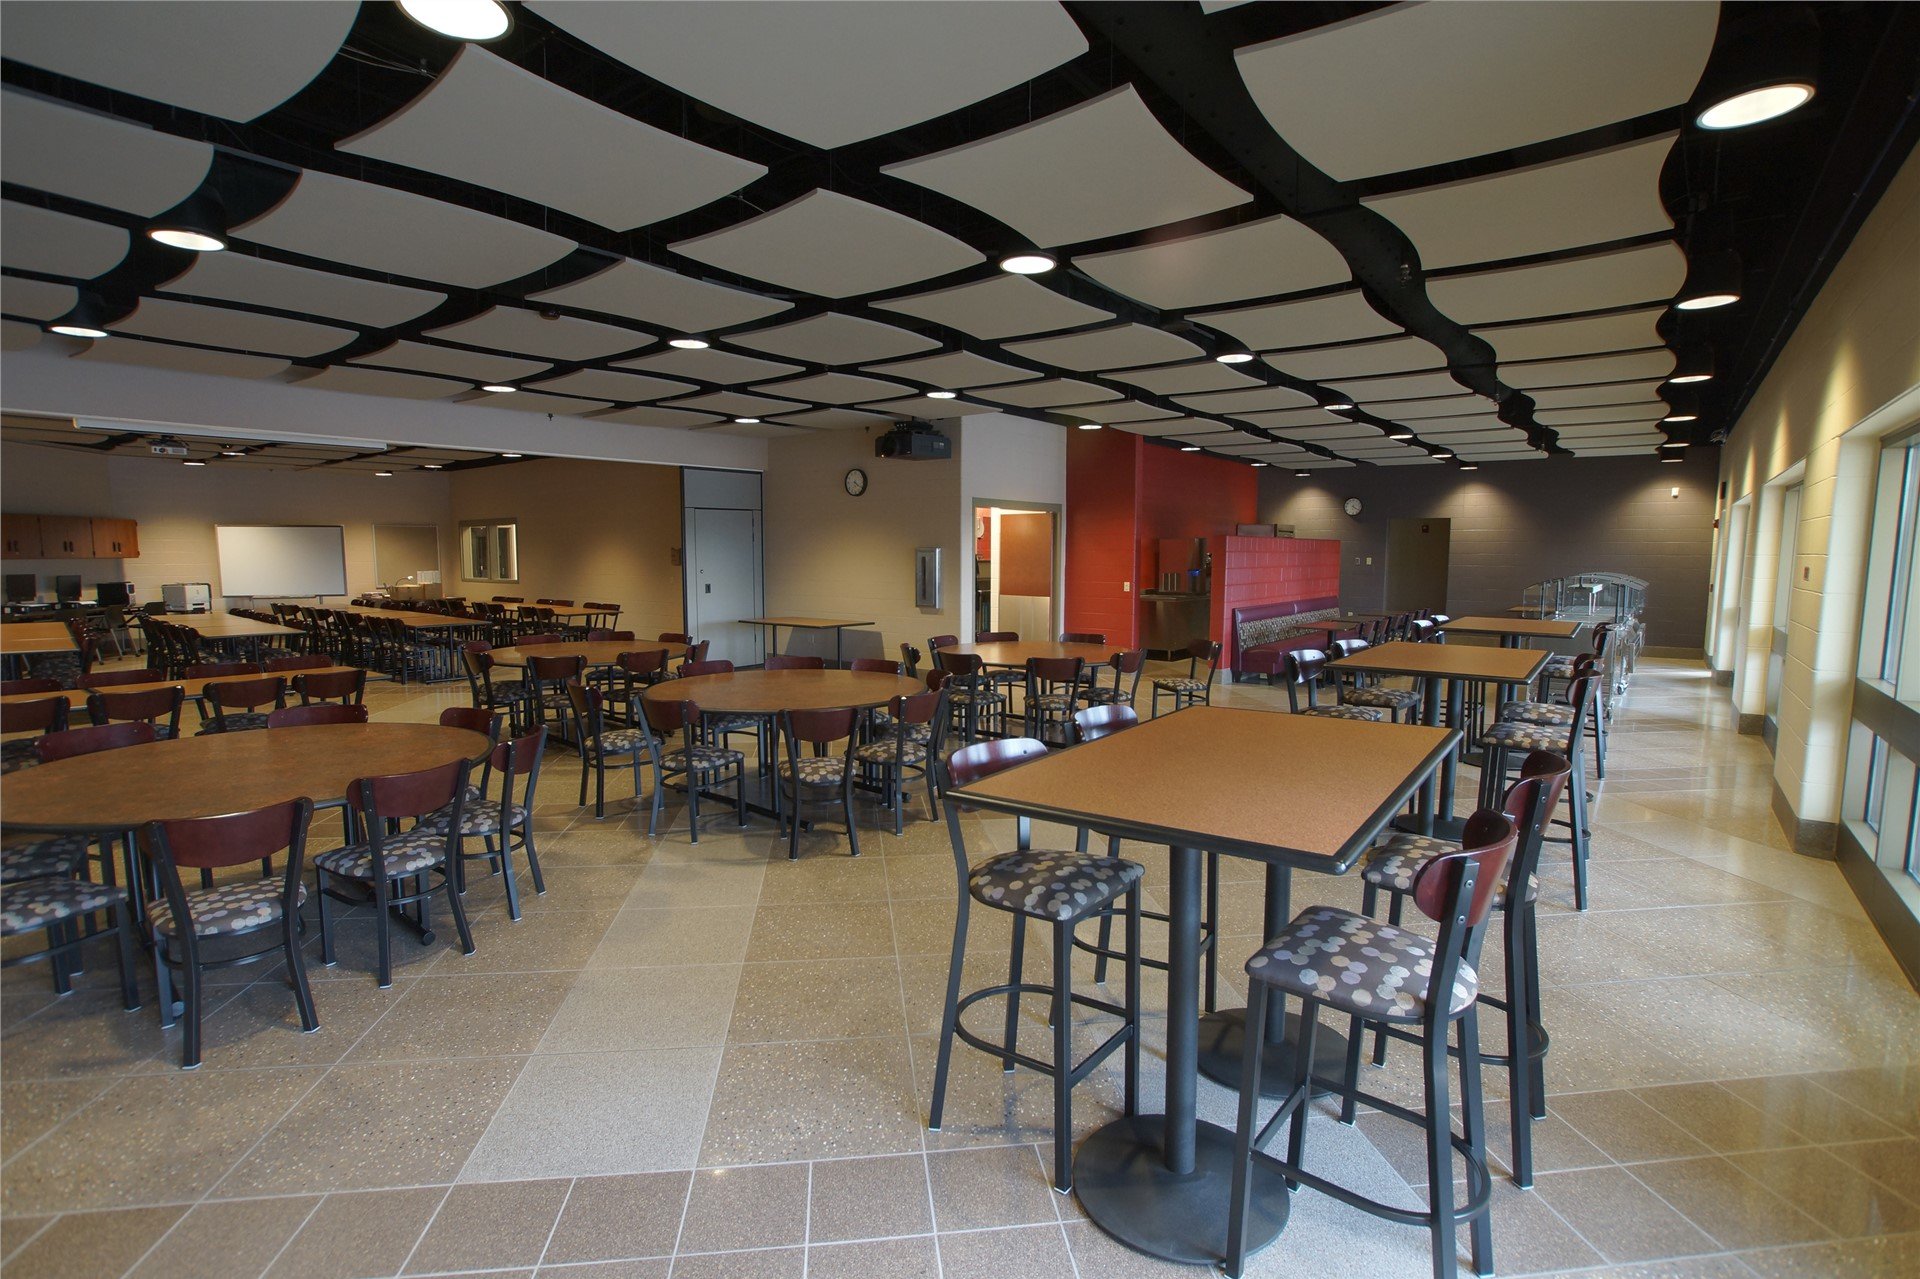 Tables and chairs in empty Cup & Saucer Restaurant.  Drop ceiling tiles.